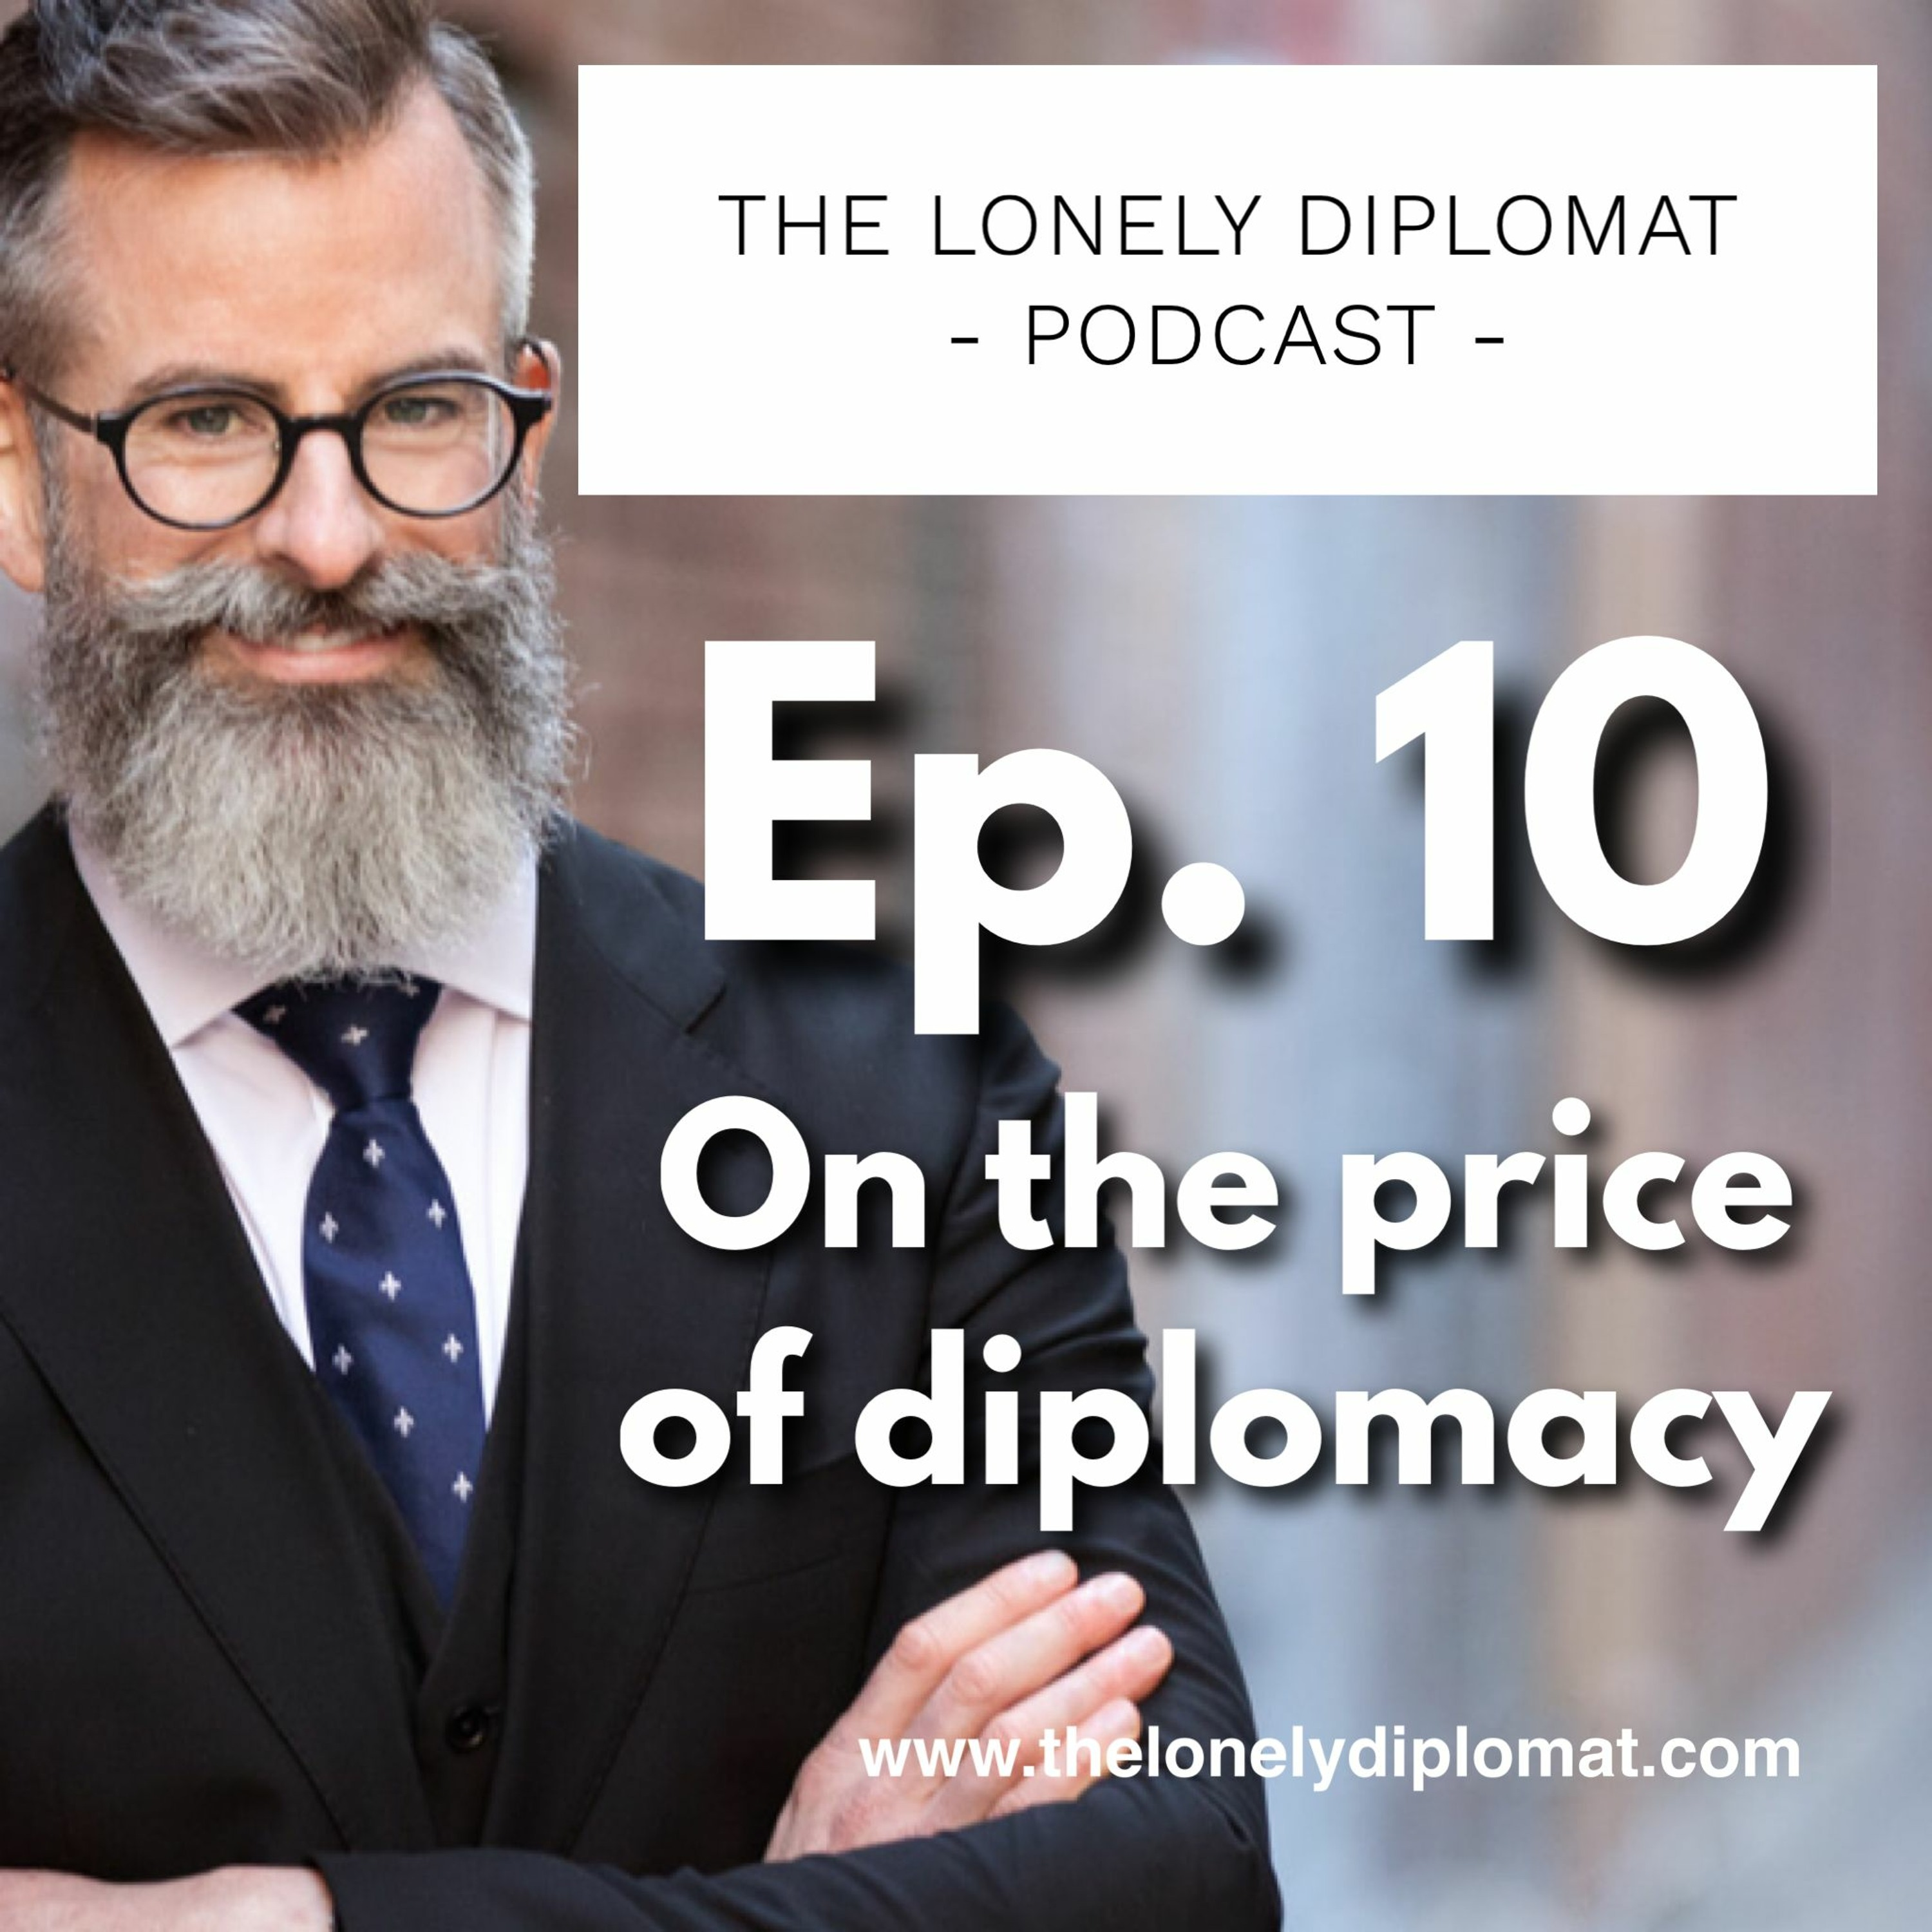 Ep. 10 - On the price of diplomacy